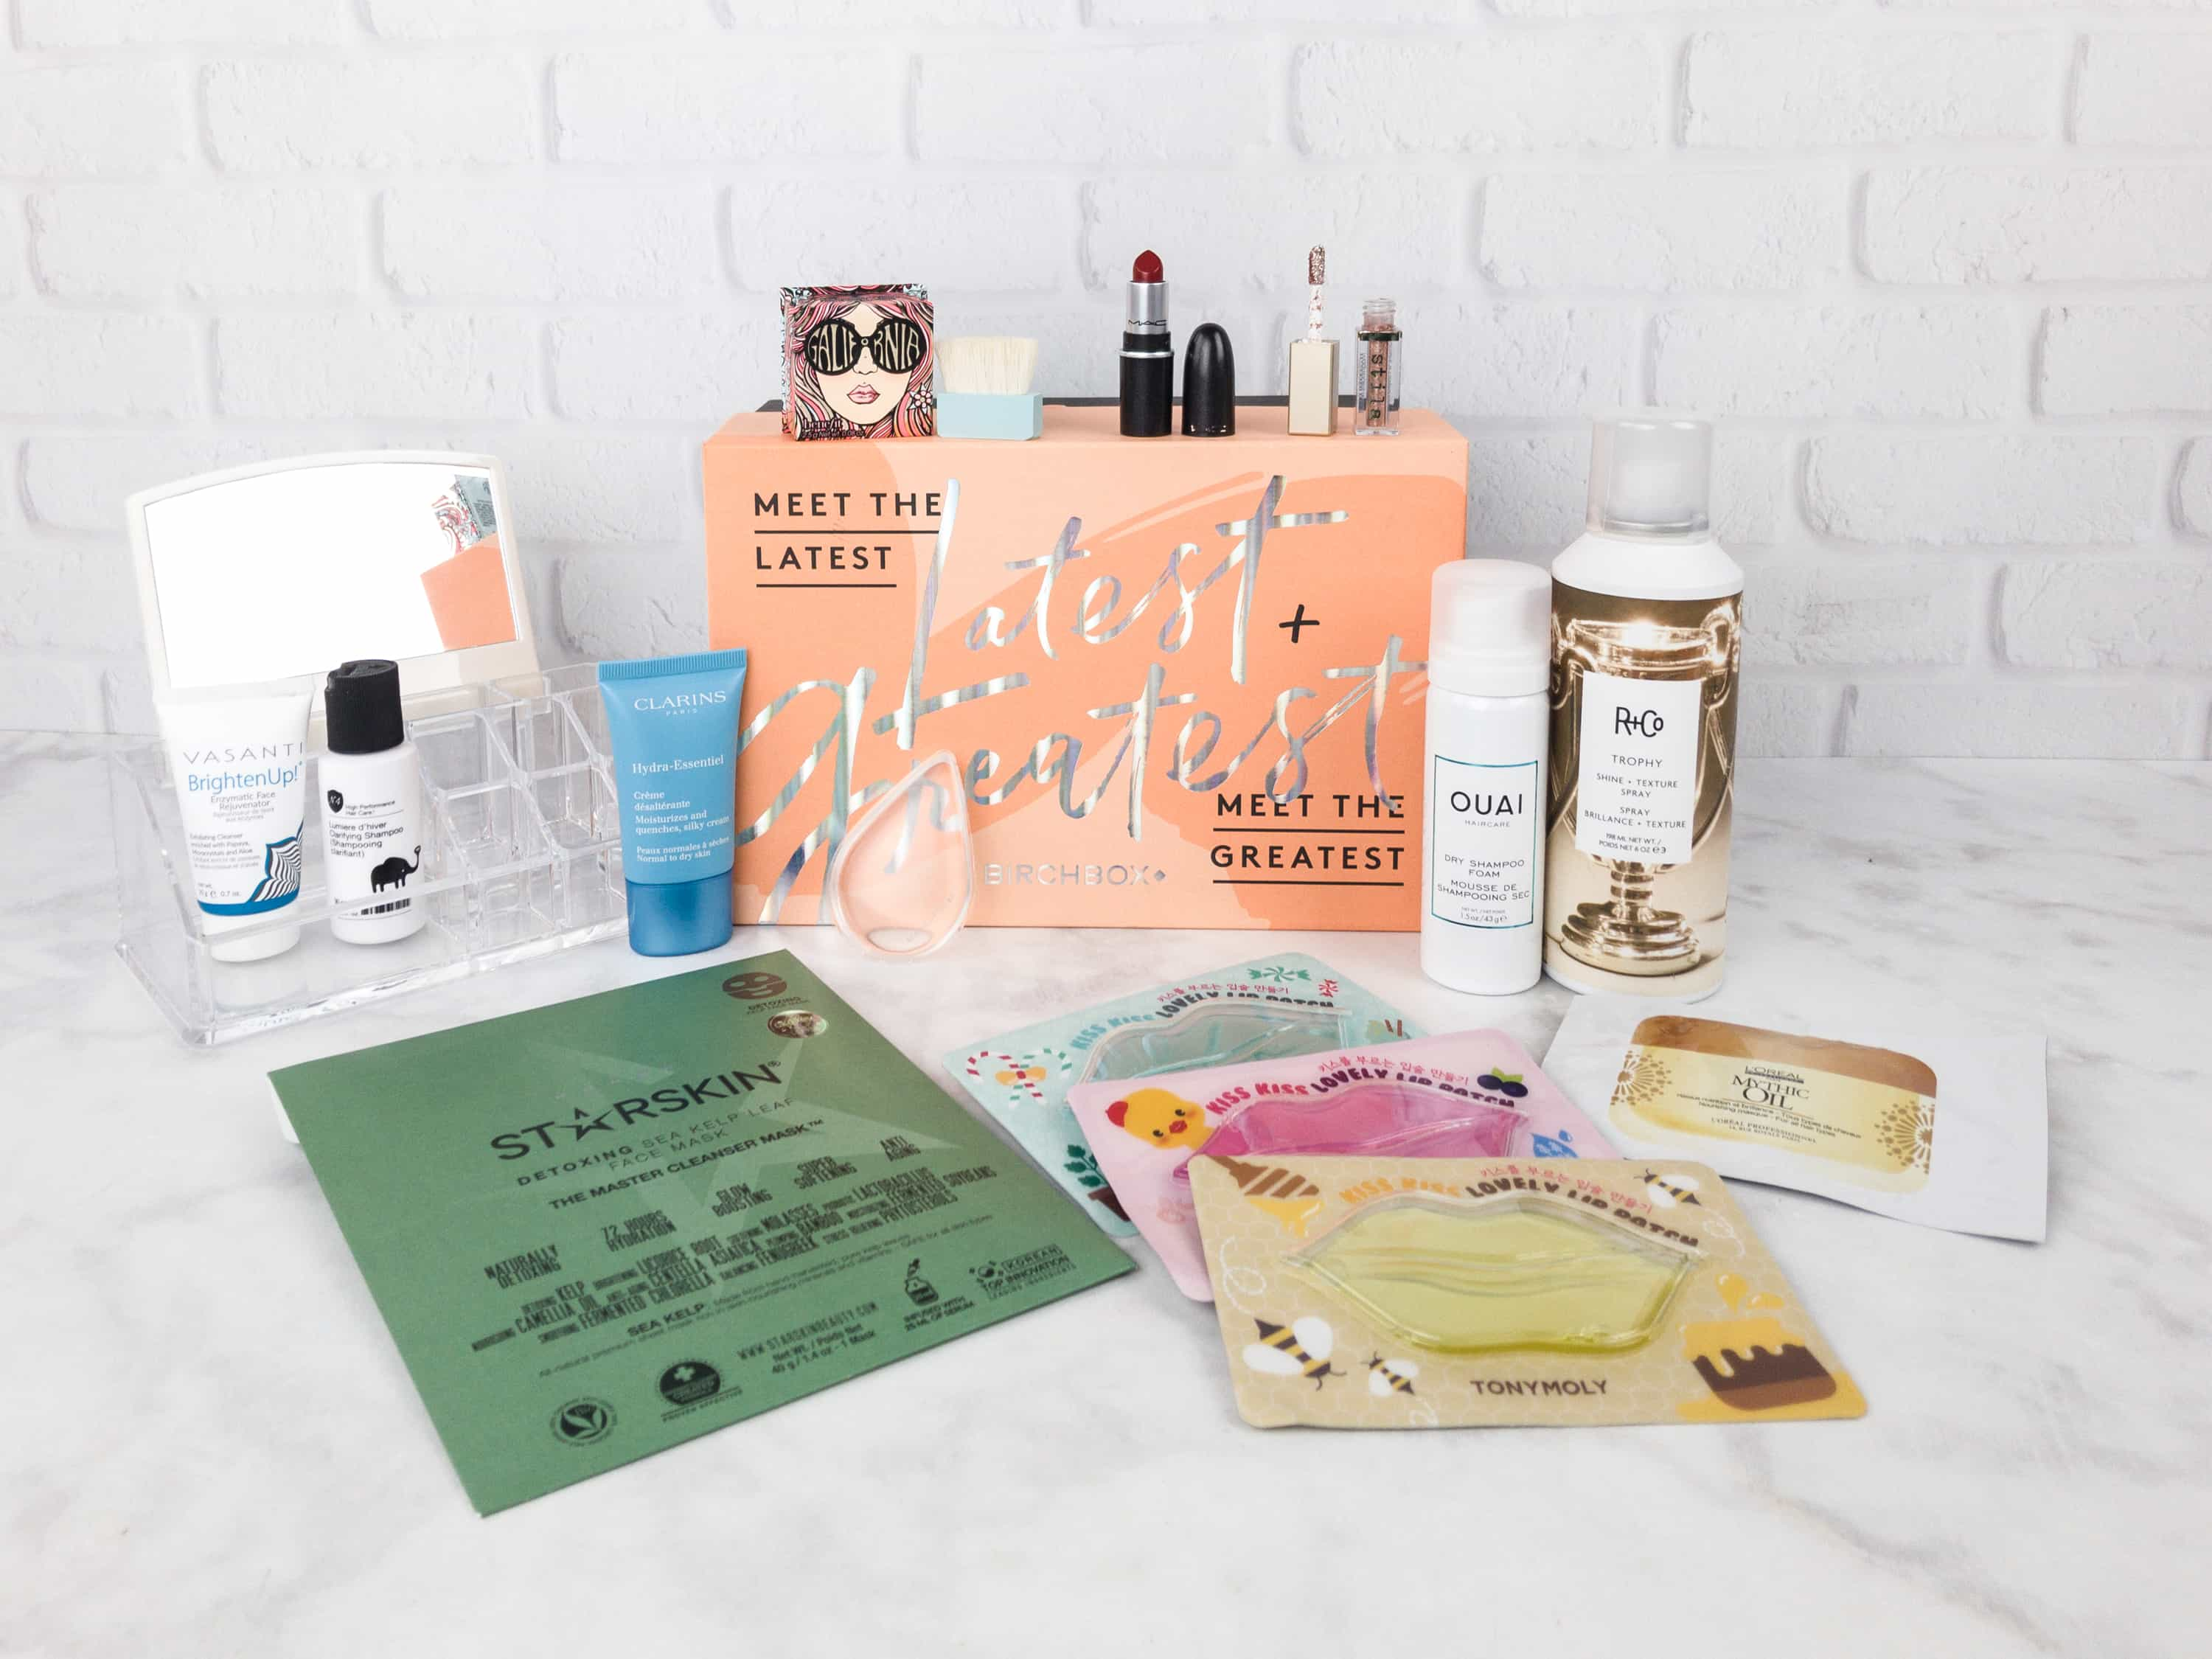 Birchbox Limited Edition Meet The Latest and Greatest Box Review + Coupon Codes!